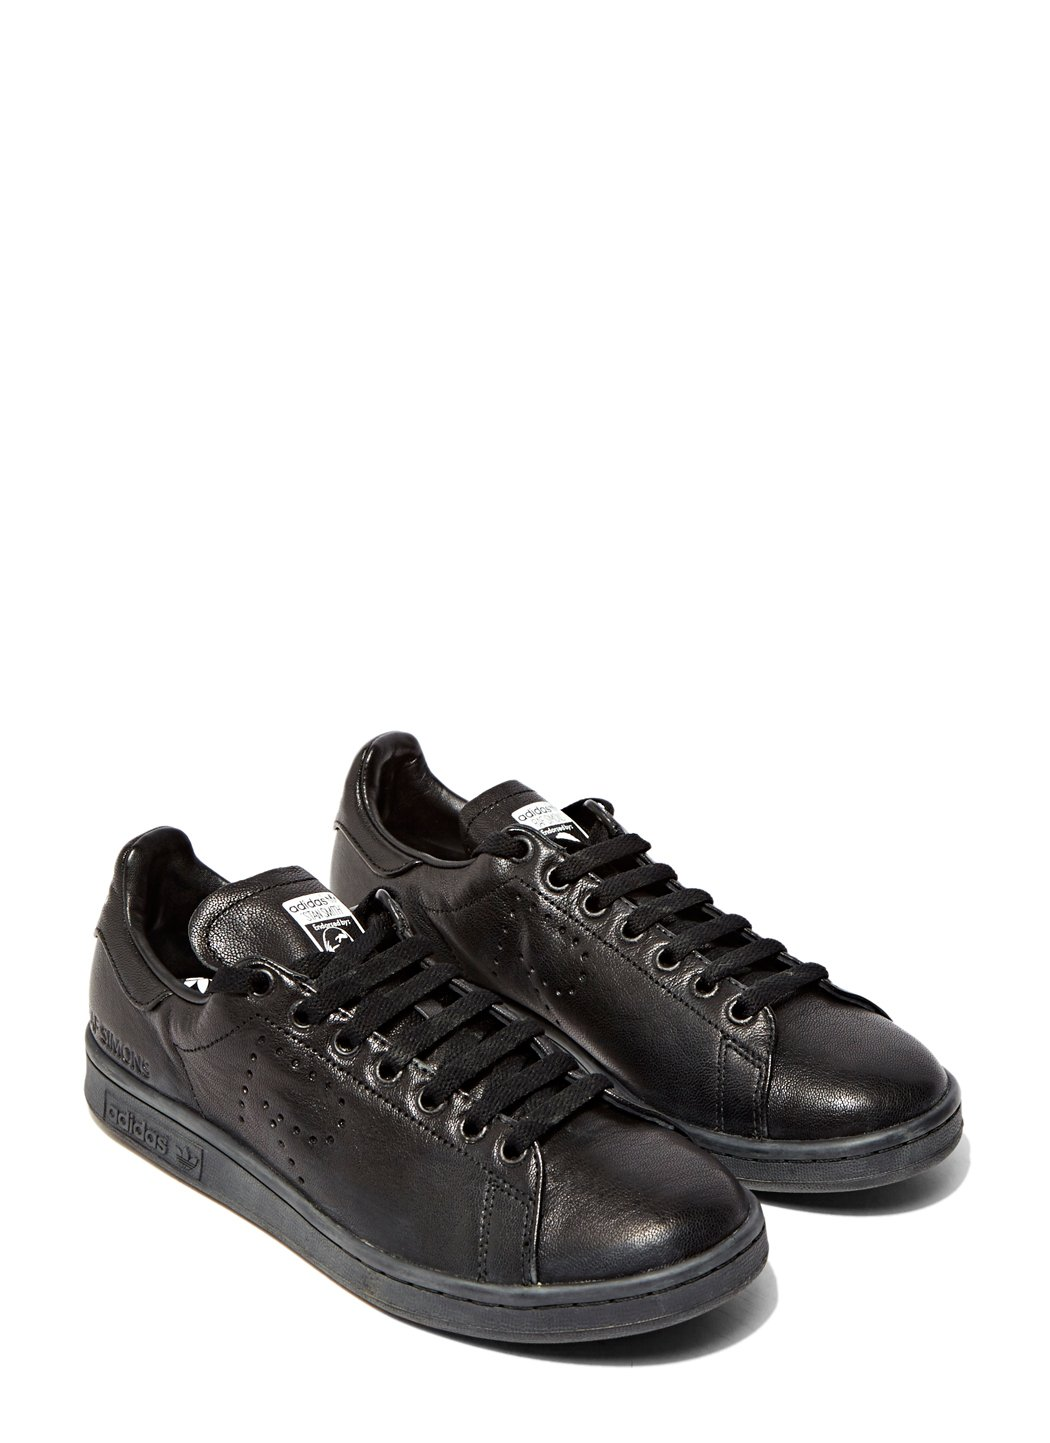 ed901405e448cf Lyst - Raf Simons Aged Stan Smith Sneakers in Black for Men